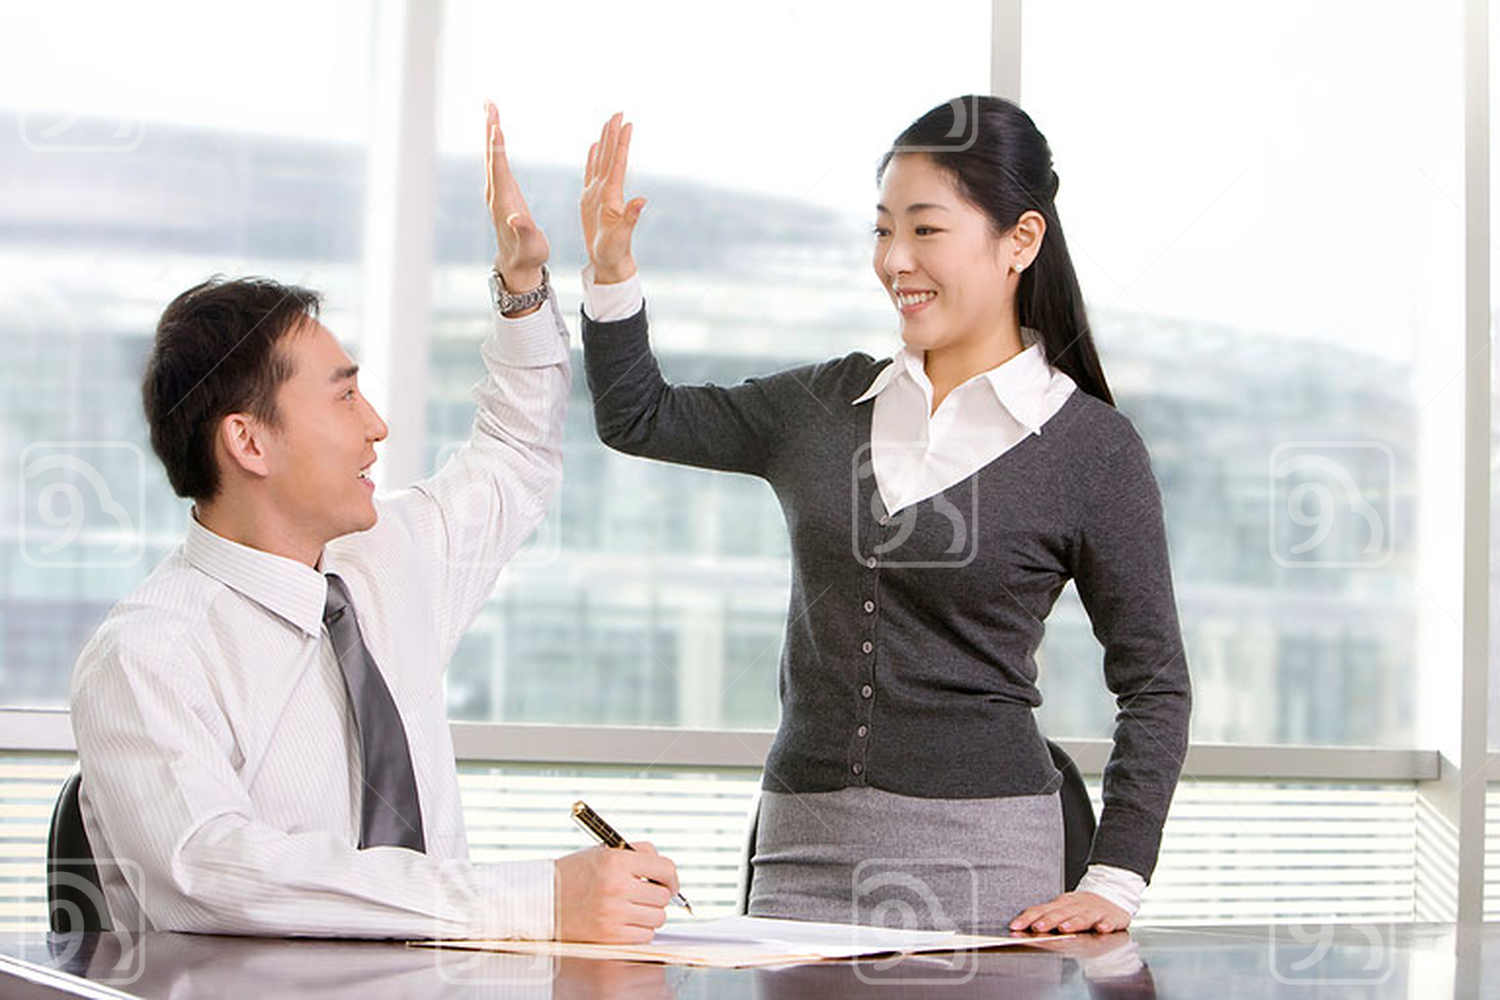 Chinese officemates high-five